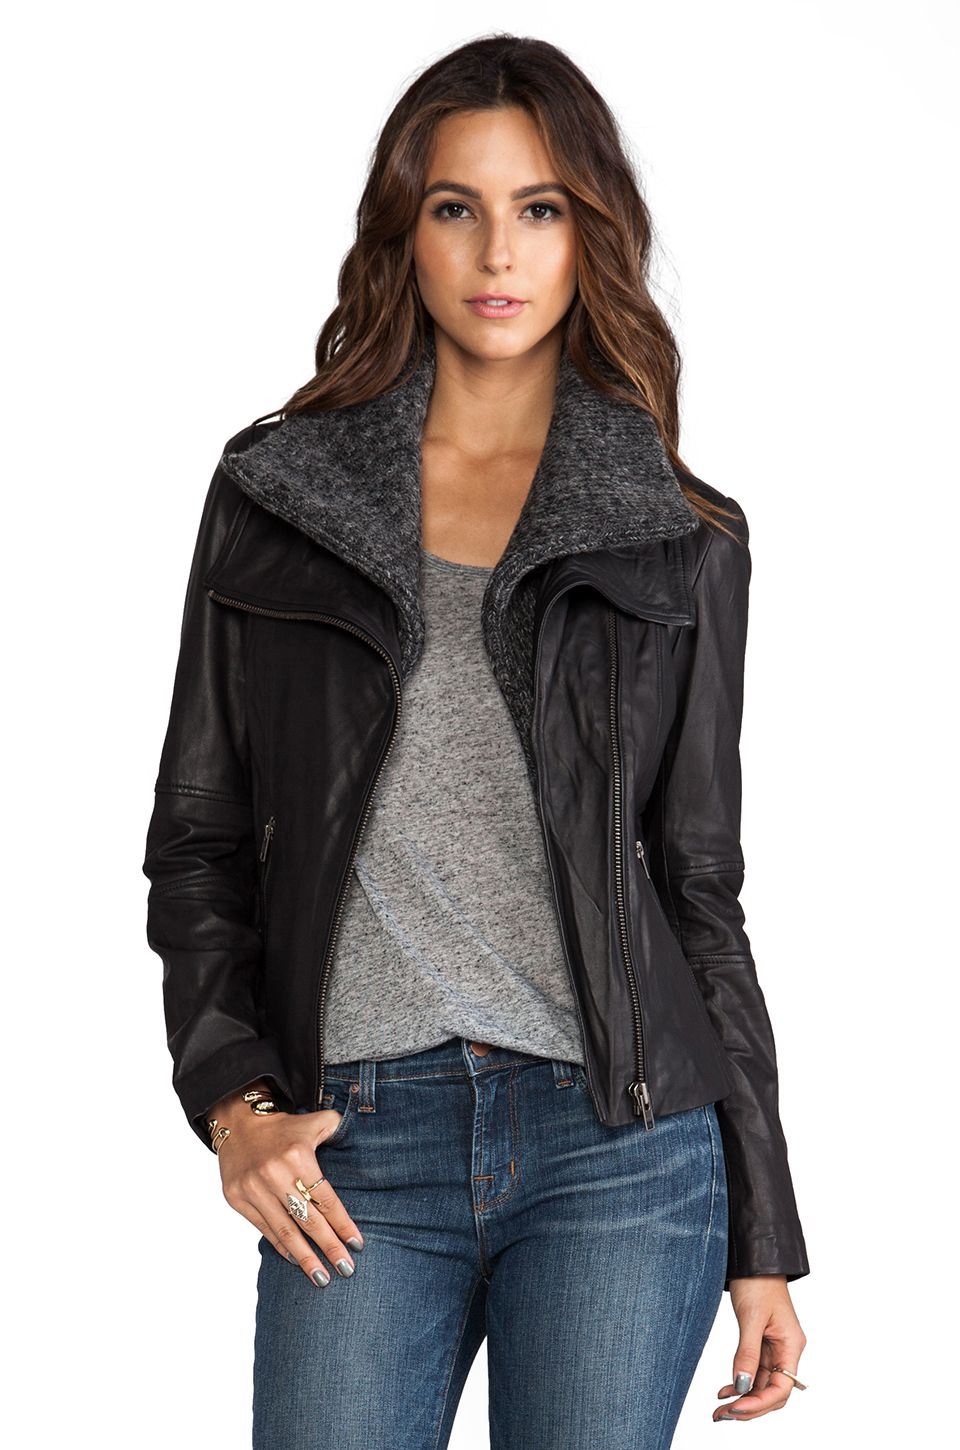 Soia & Kyo Donia Leather Jacket in Black from